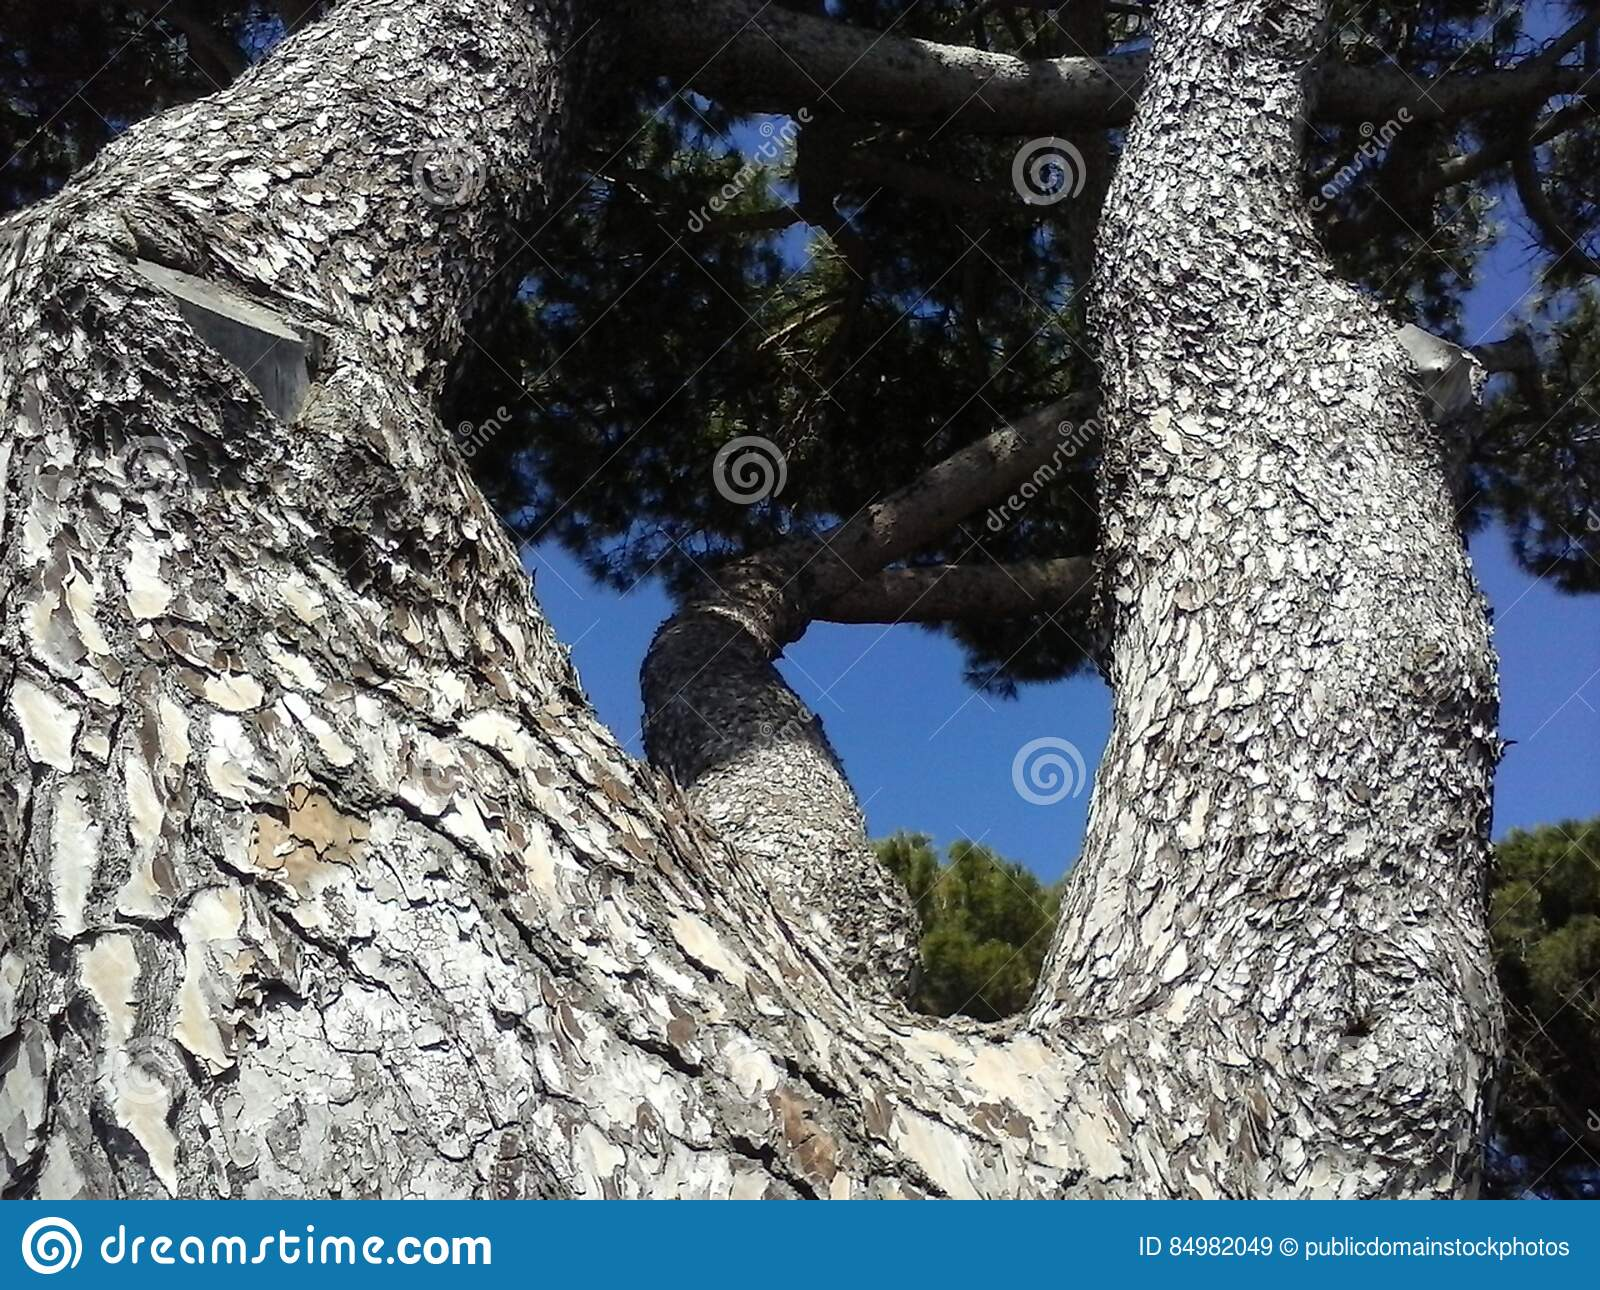 Download CAM06959 stock image. Image of photo, pine, image, 免费 - 84982049